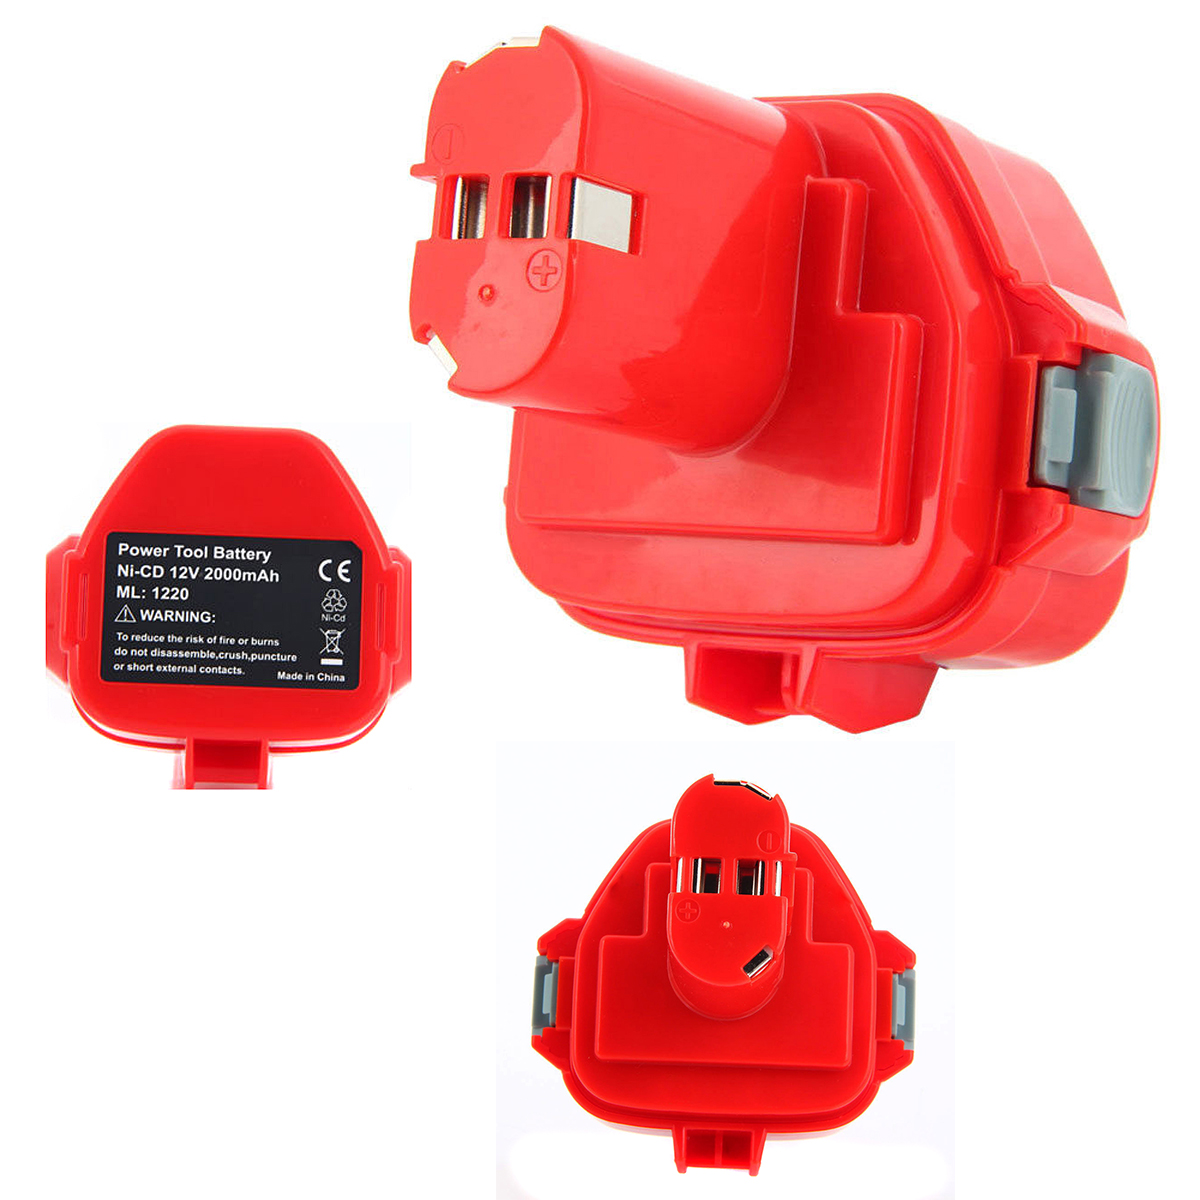 1 pc Rechargeable Battery for Makita 12V PA12 2000mAh Ni-CD Replacement Power Tool Battery for Makita 1220 1222 1233S P20